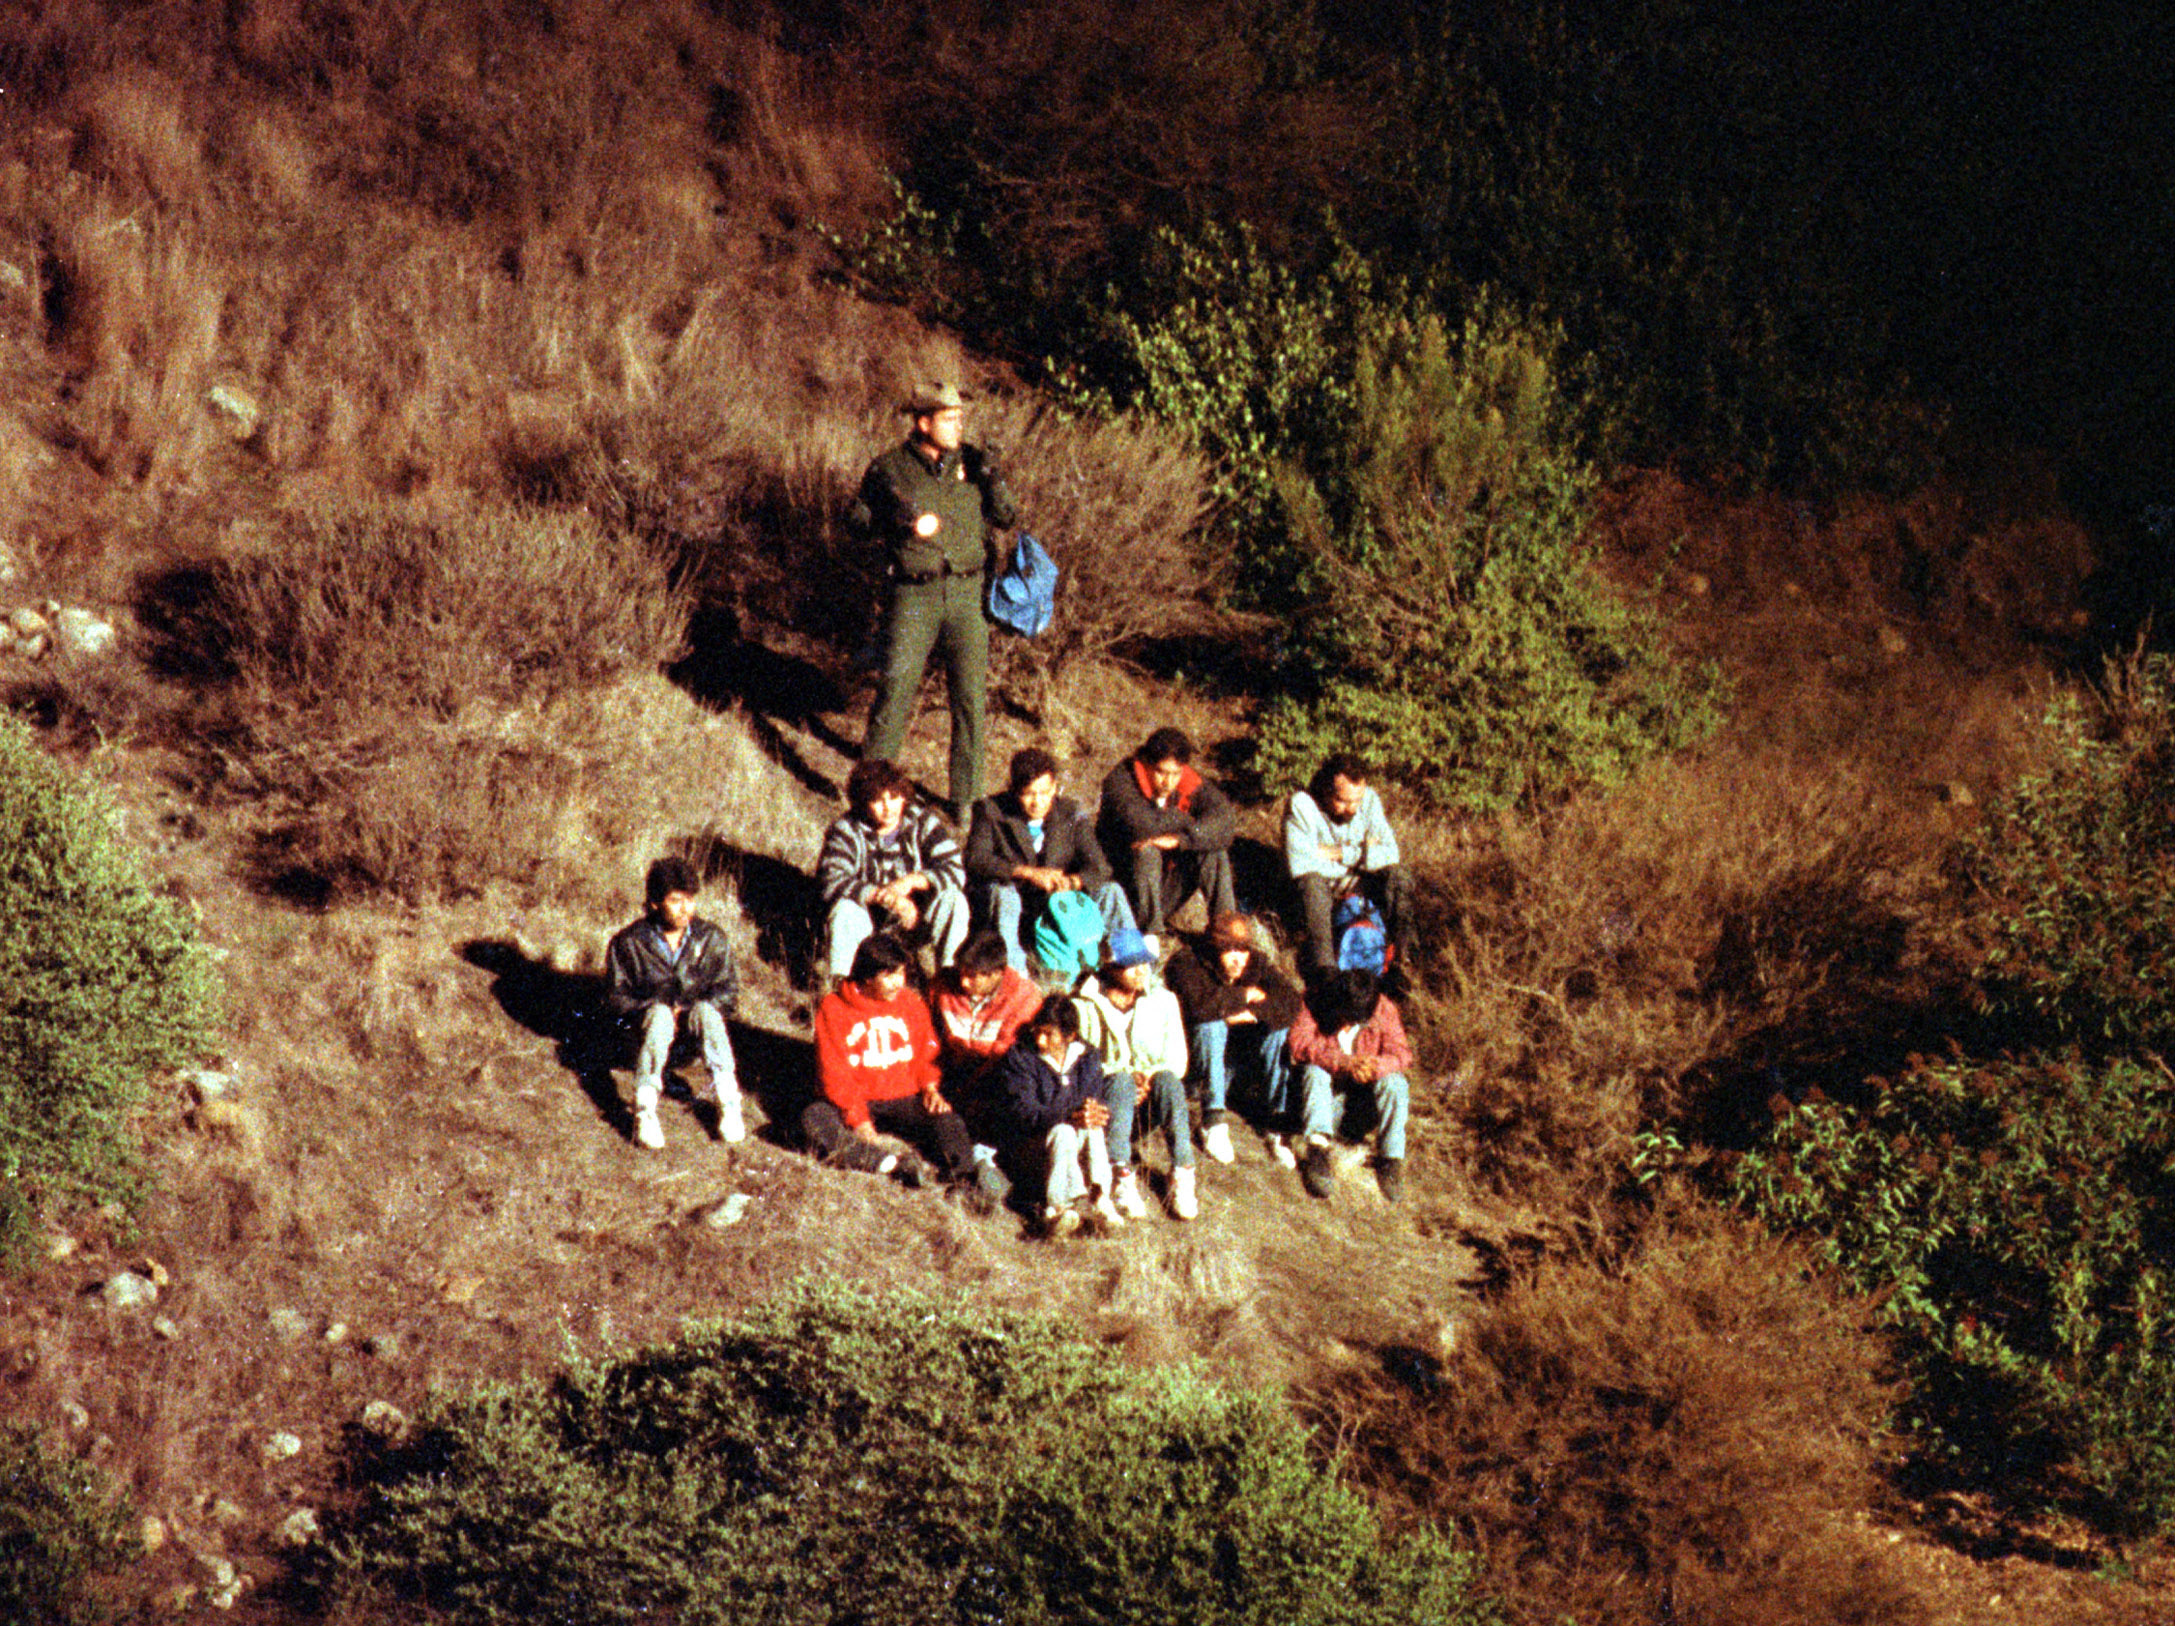 Illegal Mexican immigrants being searched by US Border Patrol agent (back). They're being illuminated on a steep canyon hillside by a border patrol helicopter orbiting overhead.  (Photo by Dave Gatley/Mai/Mai/The LIFE Images Collection/Getty Images)